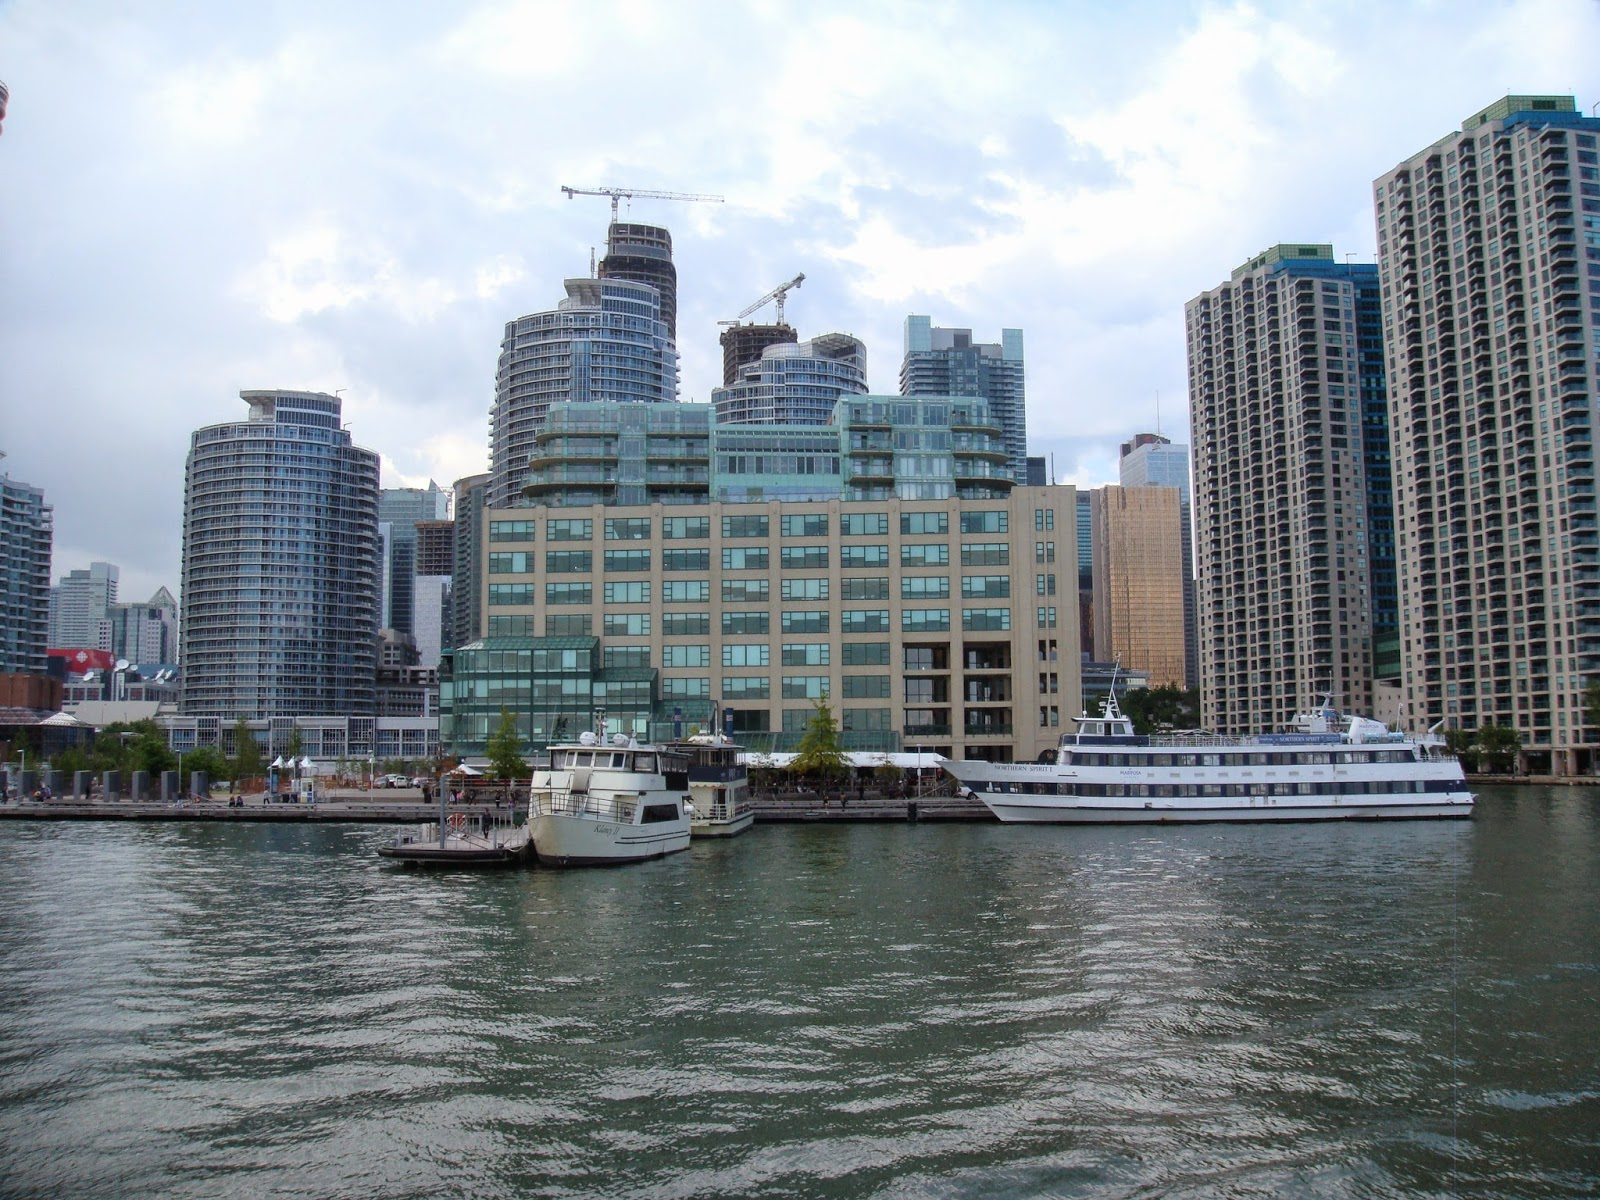 Toronto Harbourfront Condos Sale/Rent